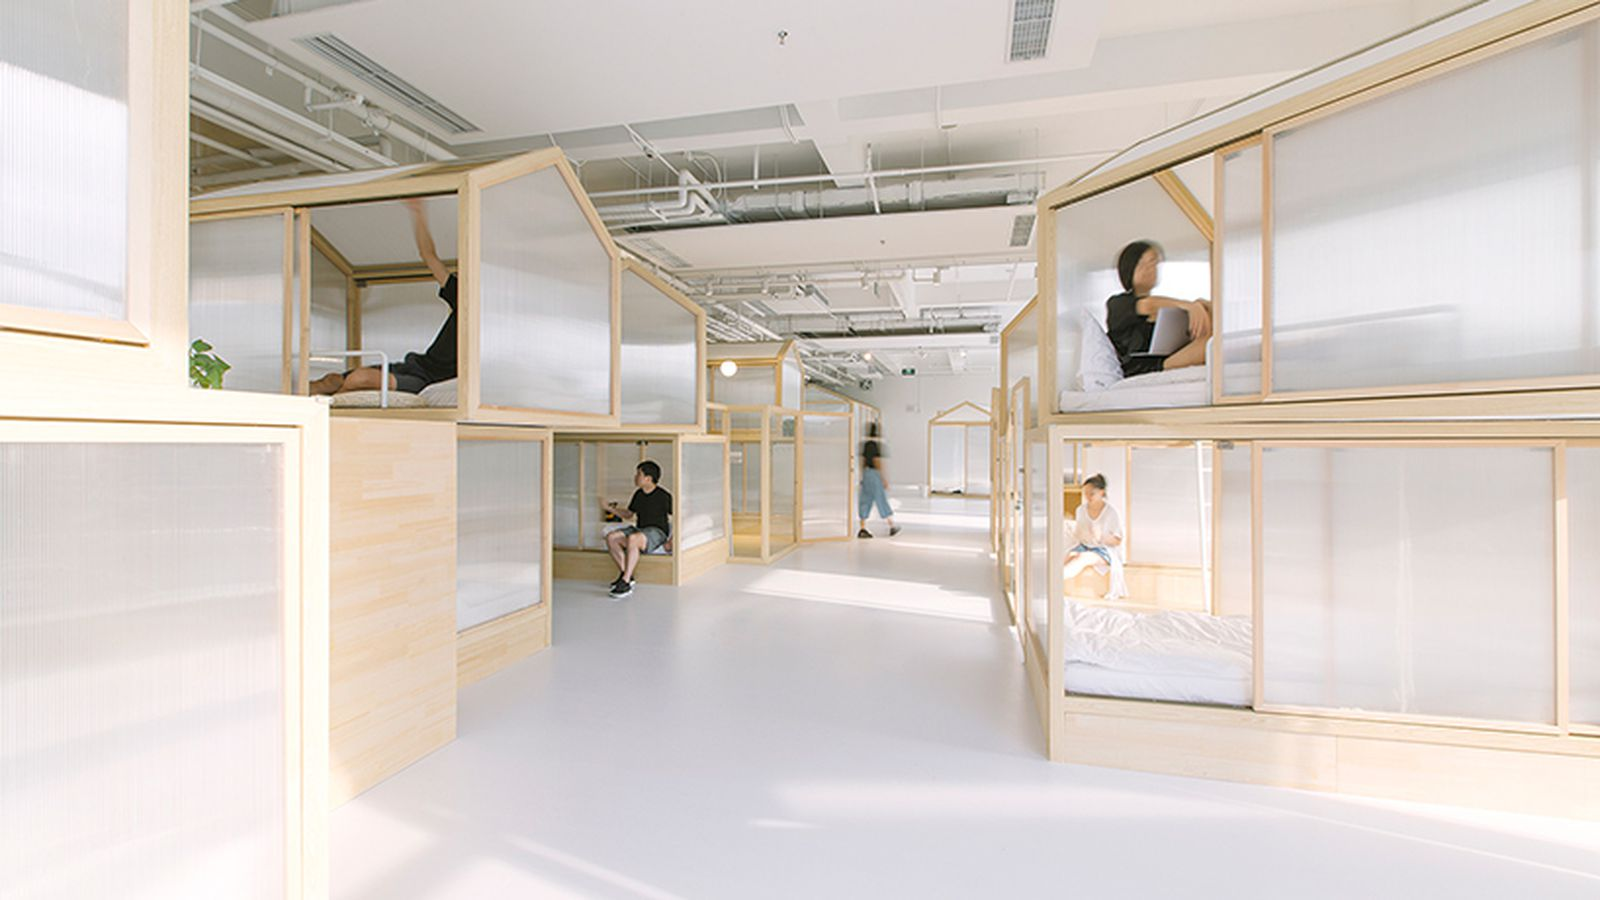 Minimalist 'tiny Houses' Fill Up Modern Beijing Hostel